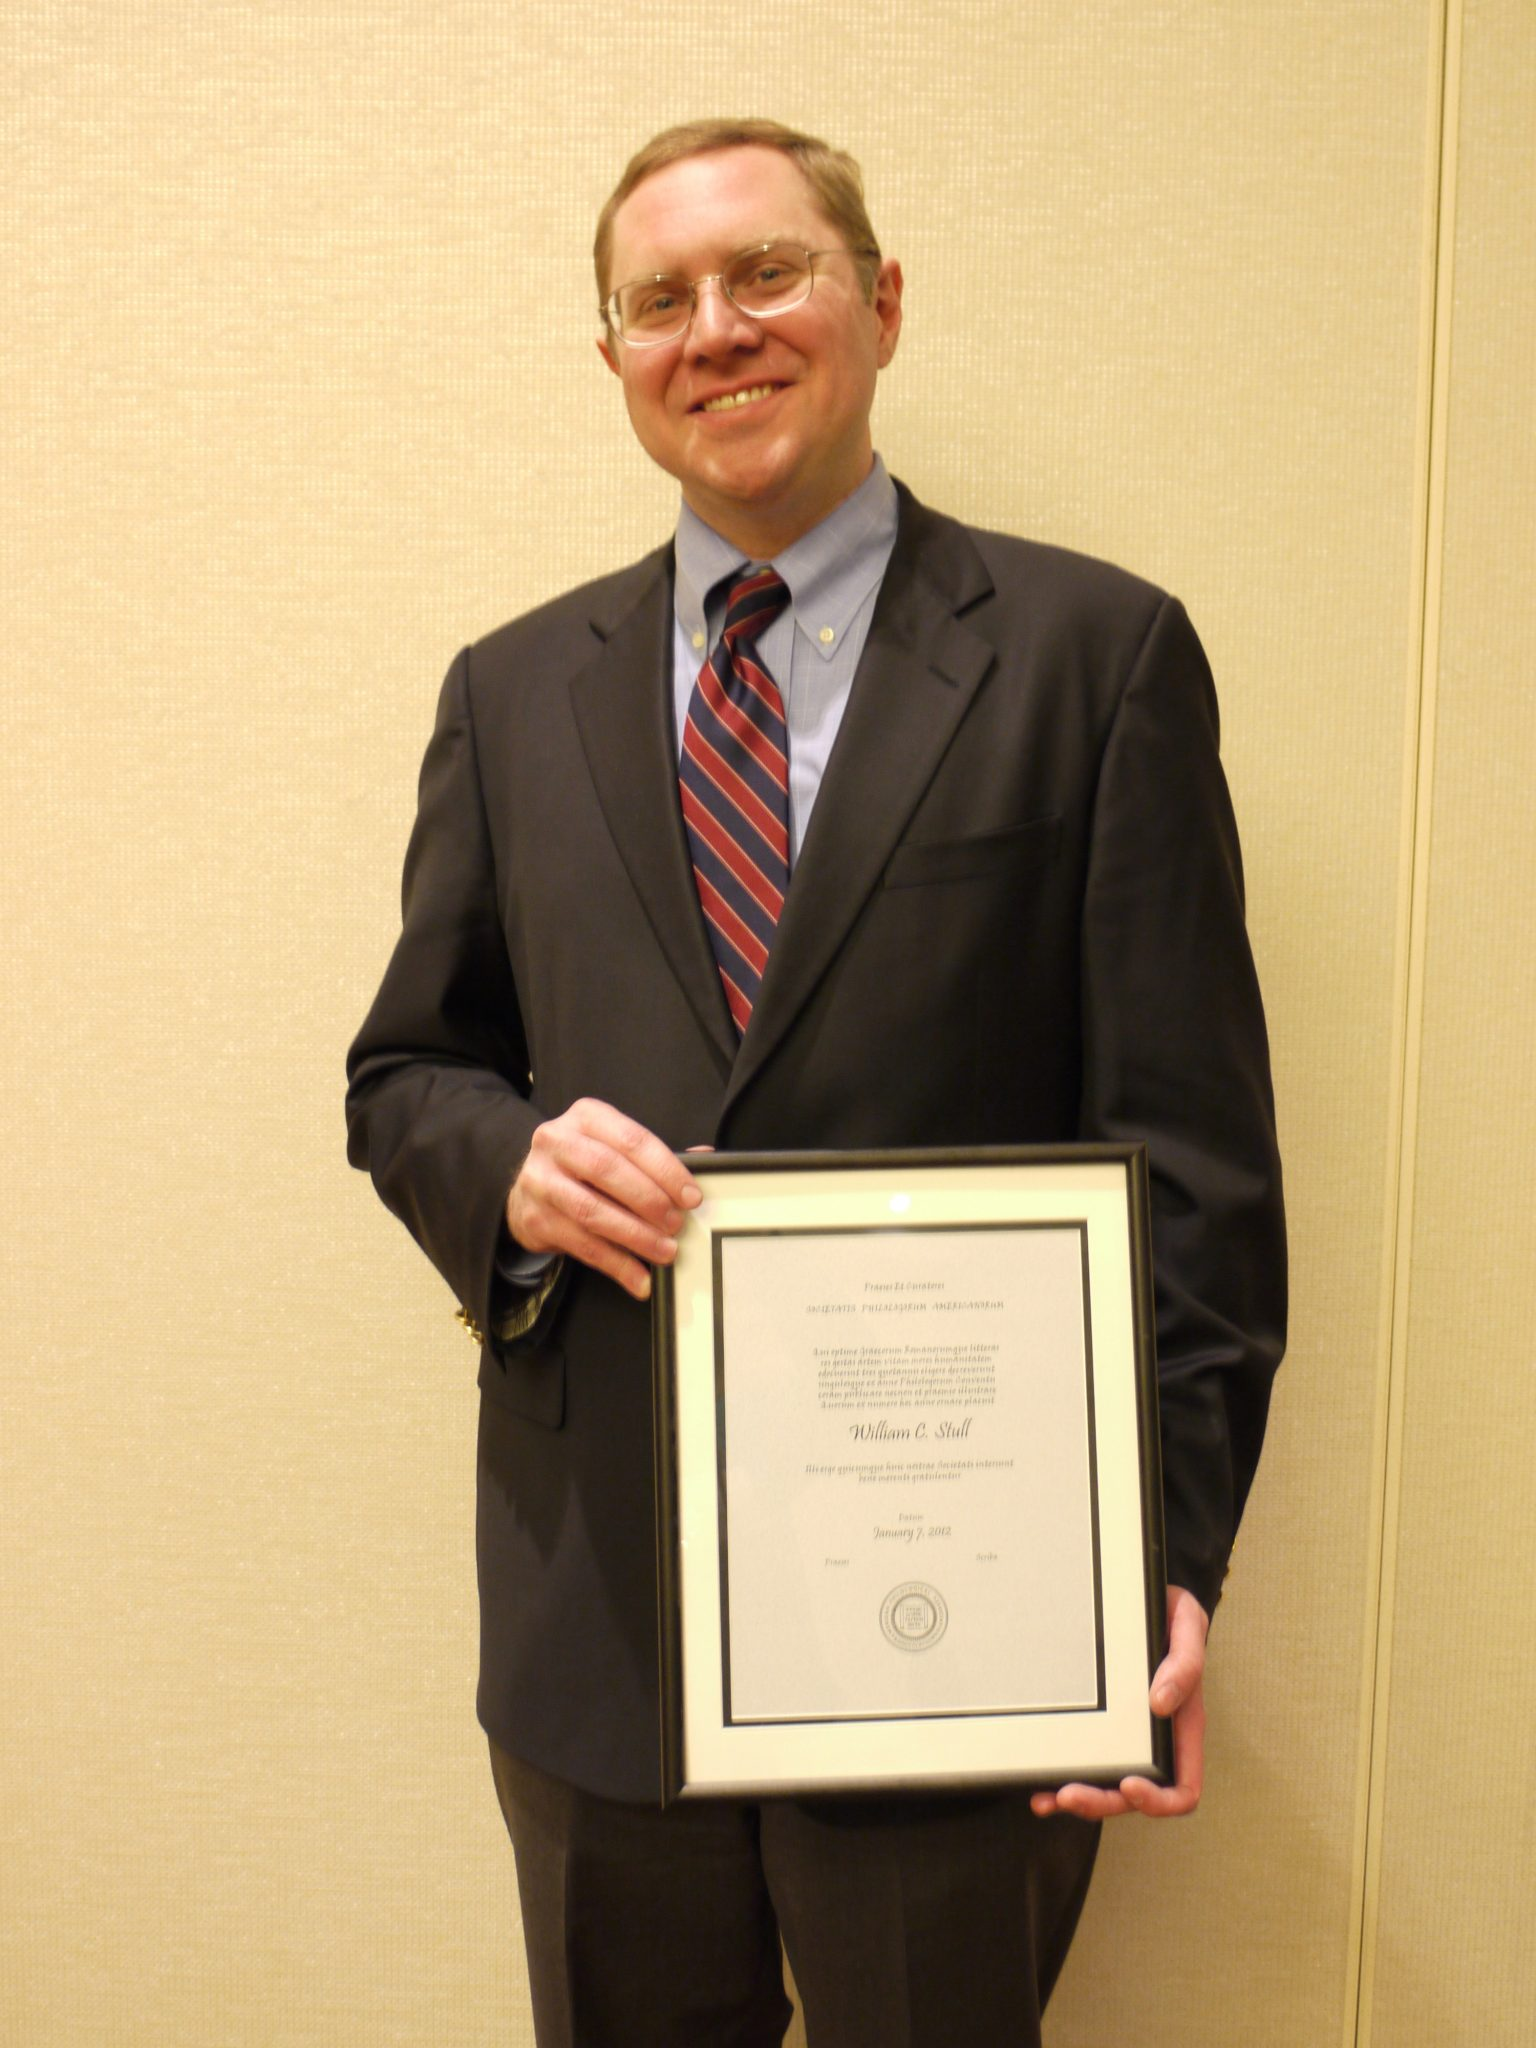 <p>Photo of Professor William Stull receiving the</p><p>Teaching Award from the</p><p>American Philological Association. January 2012.</p>